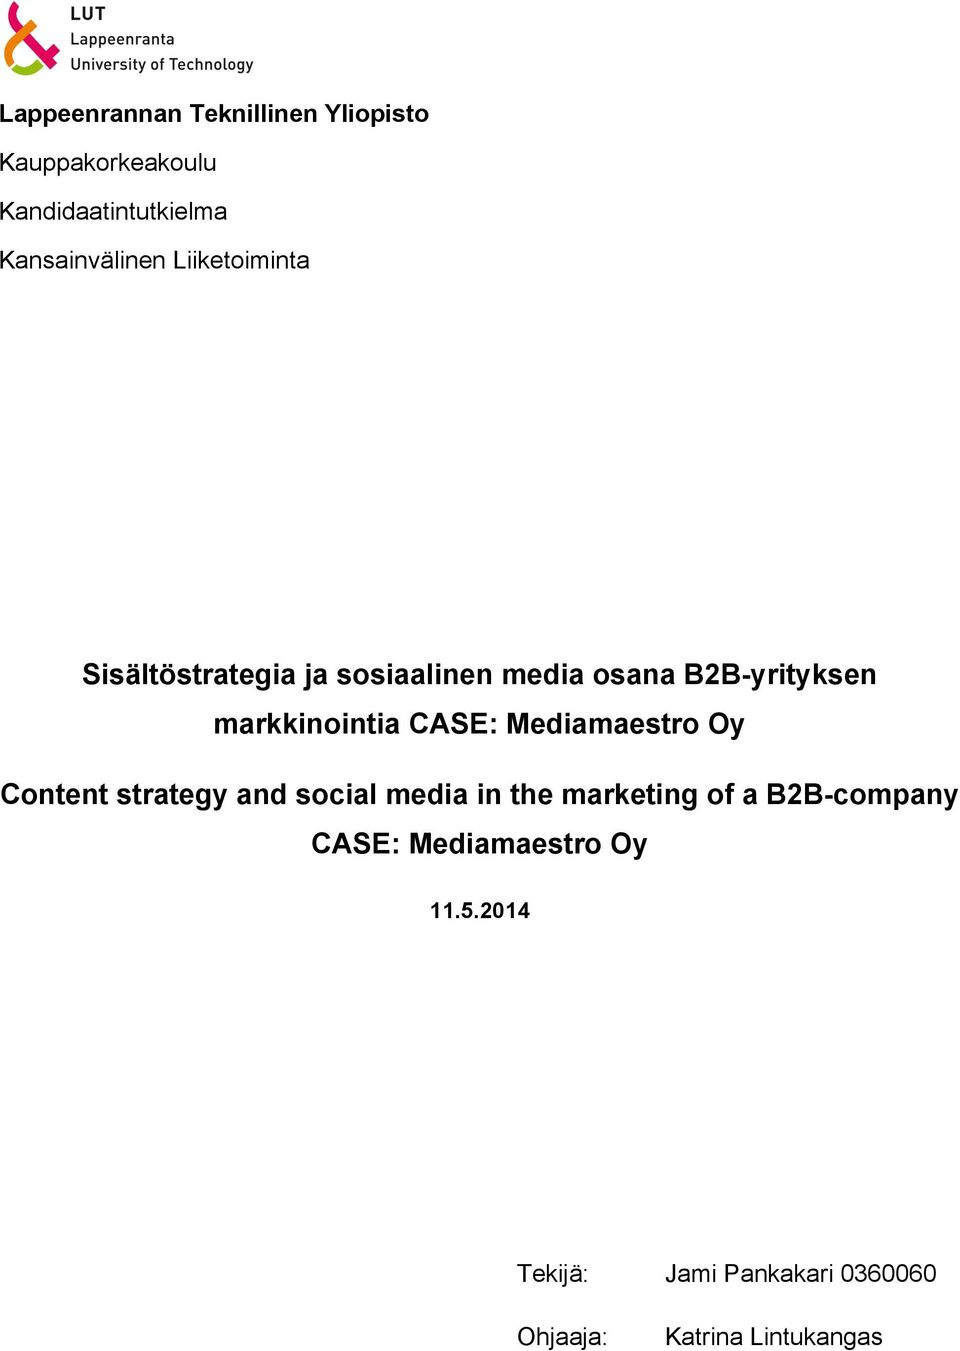 CASE: Mediamaestro Oy Content strategy and social media in the marketing of a B2B-company